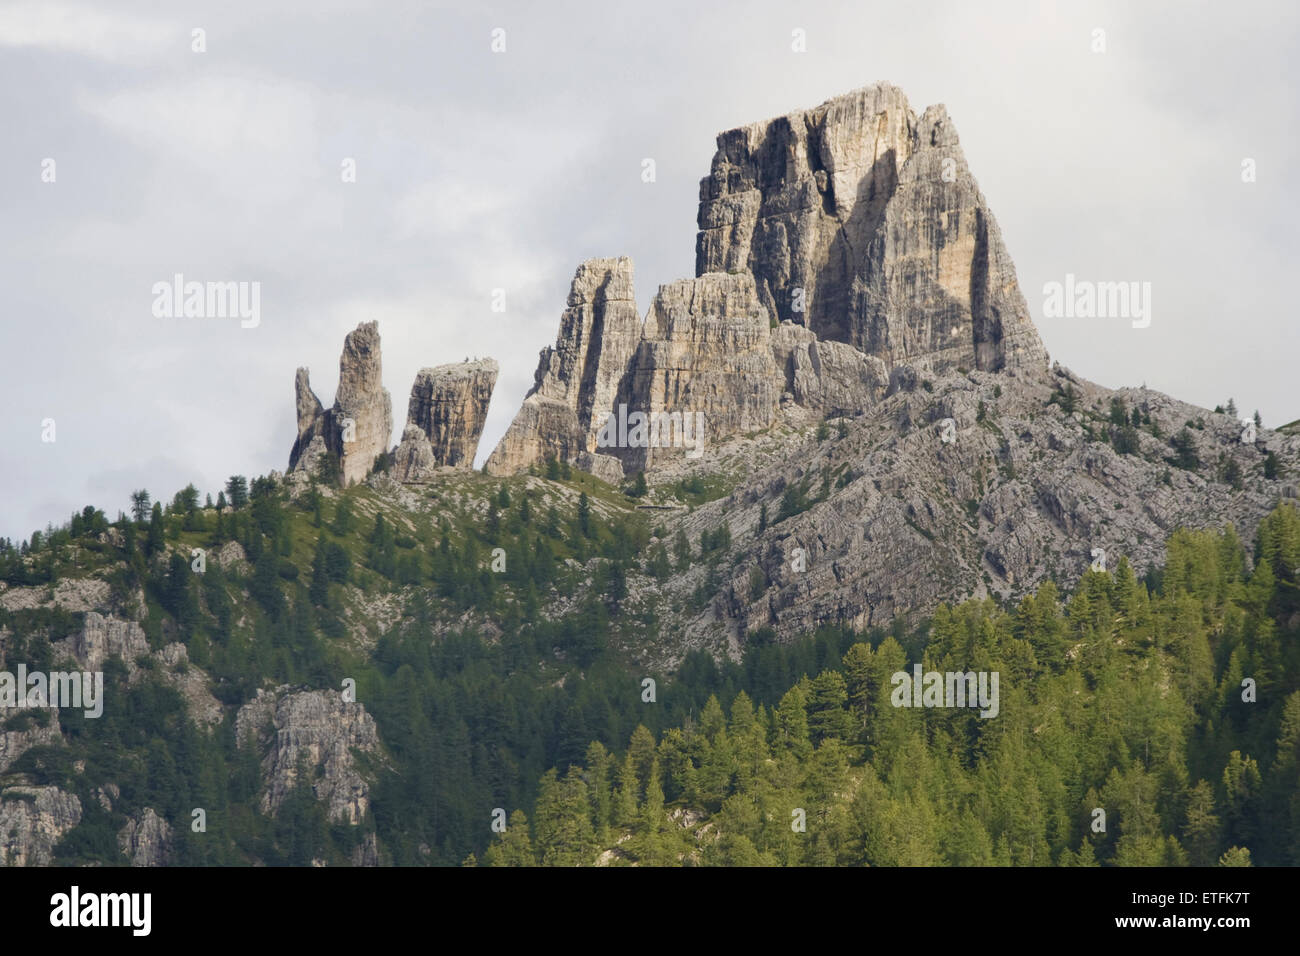 The Cinque Torri rock formations in the Dolomites, Cortina d'Ampezzo, Italy. - Stock Image